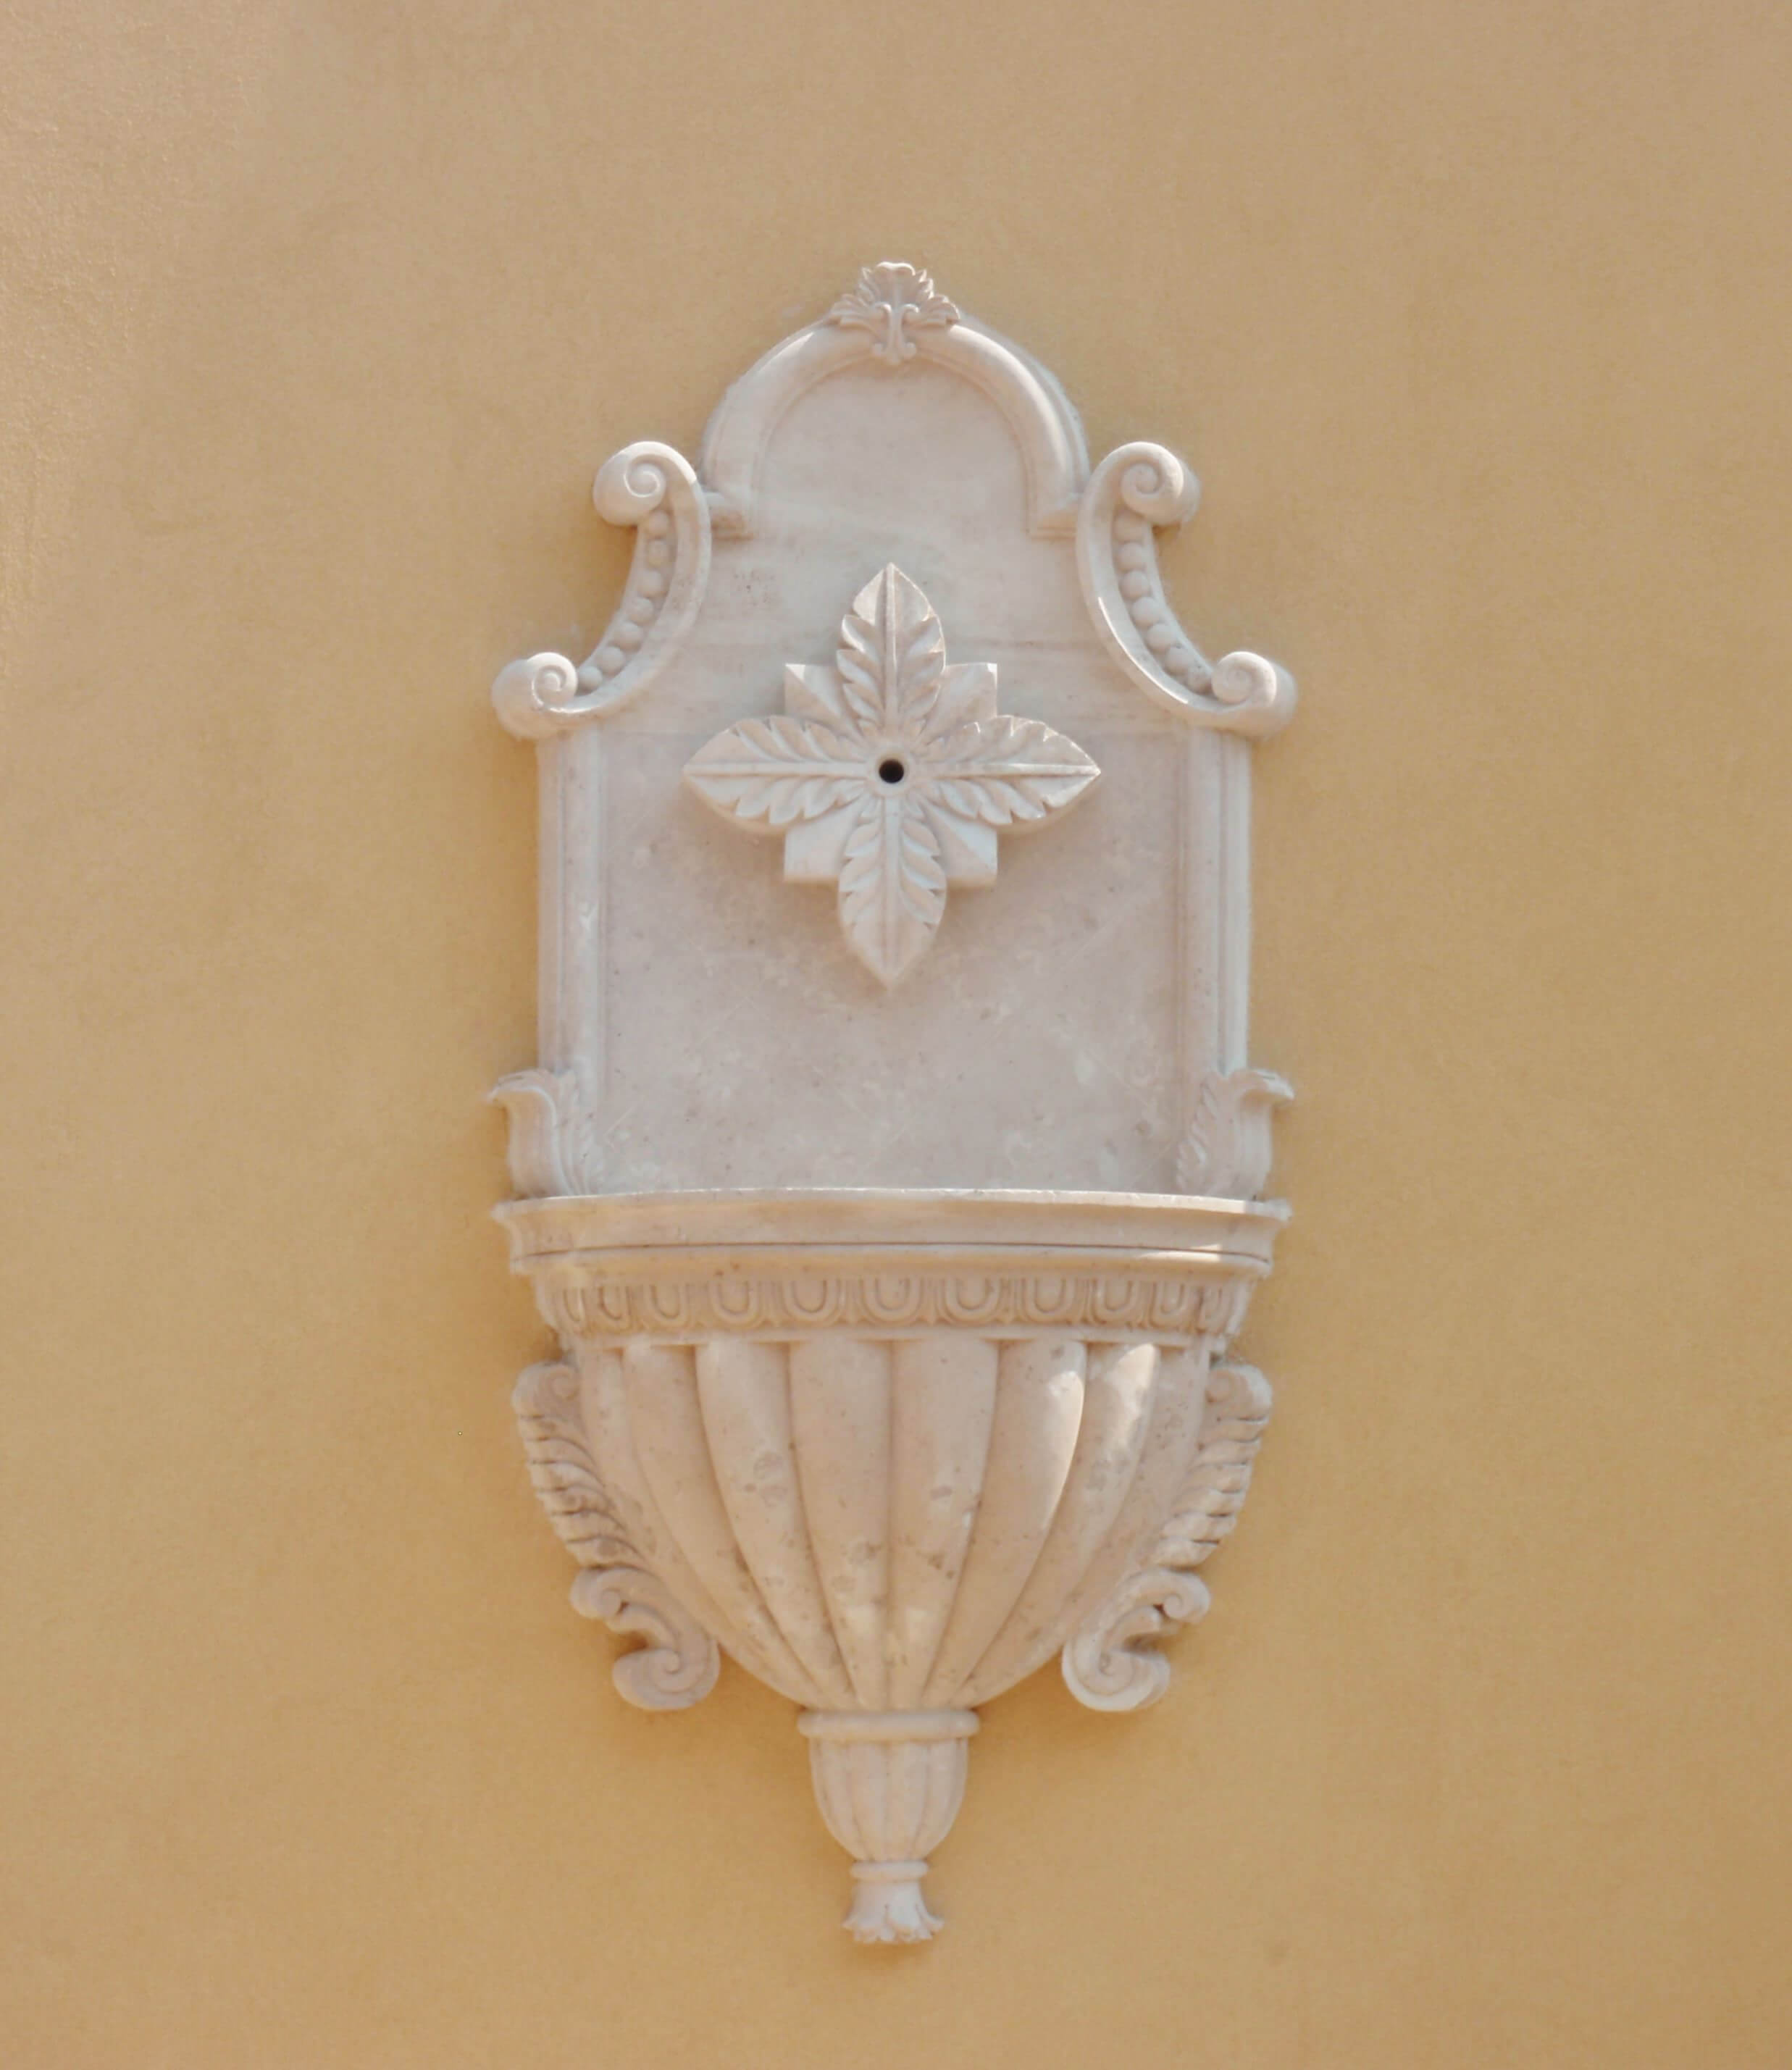 4-Wall-Sconce-Fountain-with-Decorative-Scupper-in-Limestone